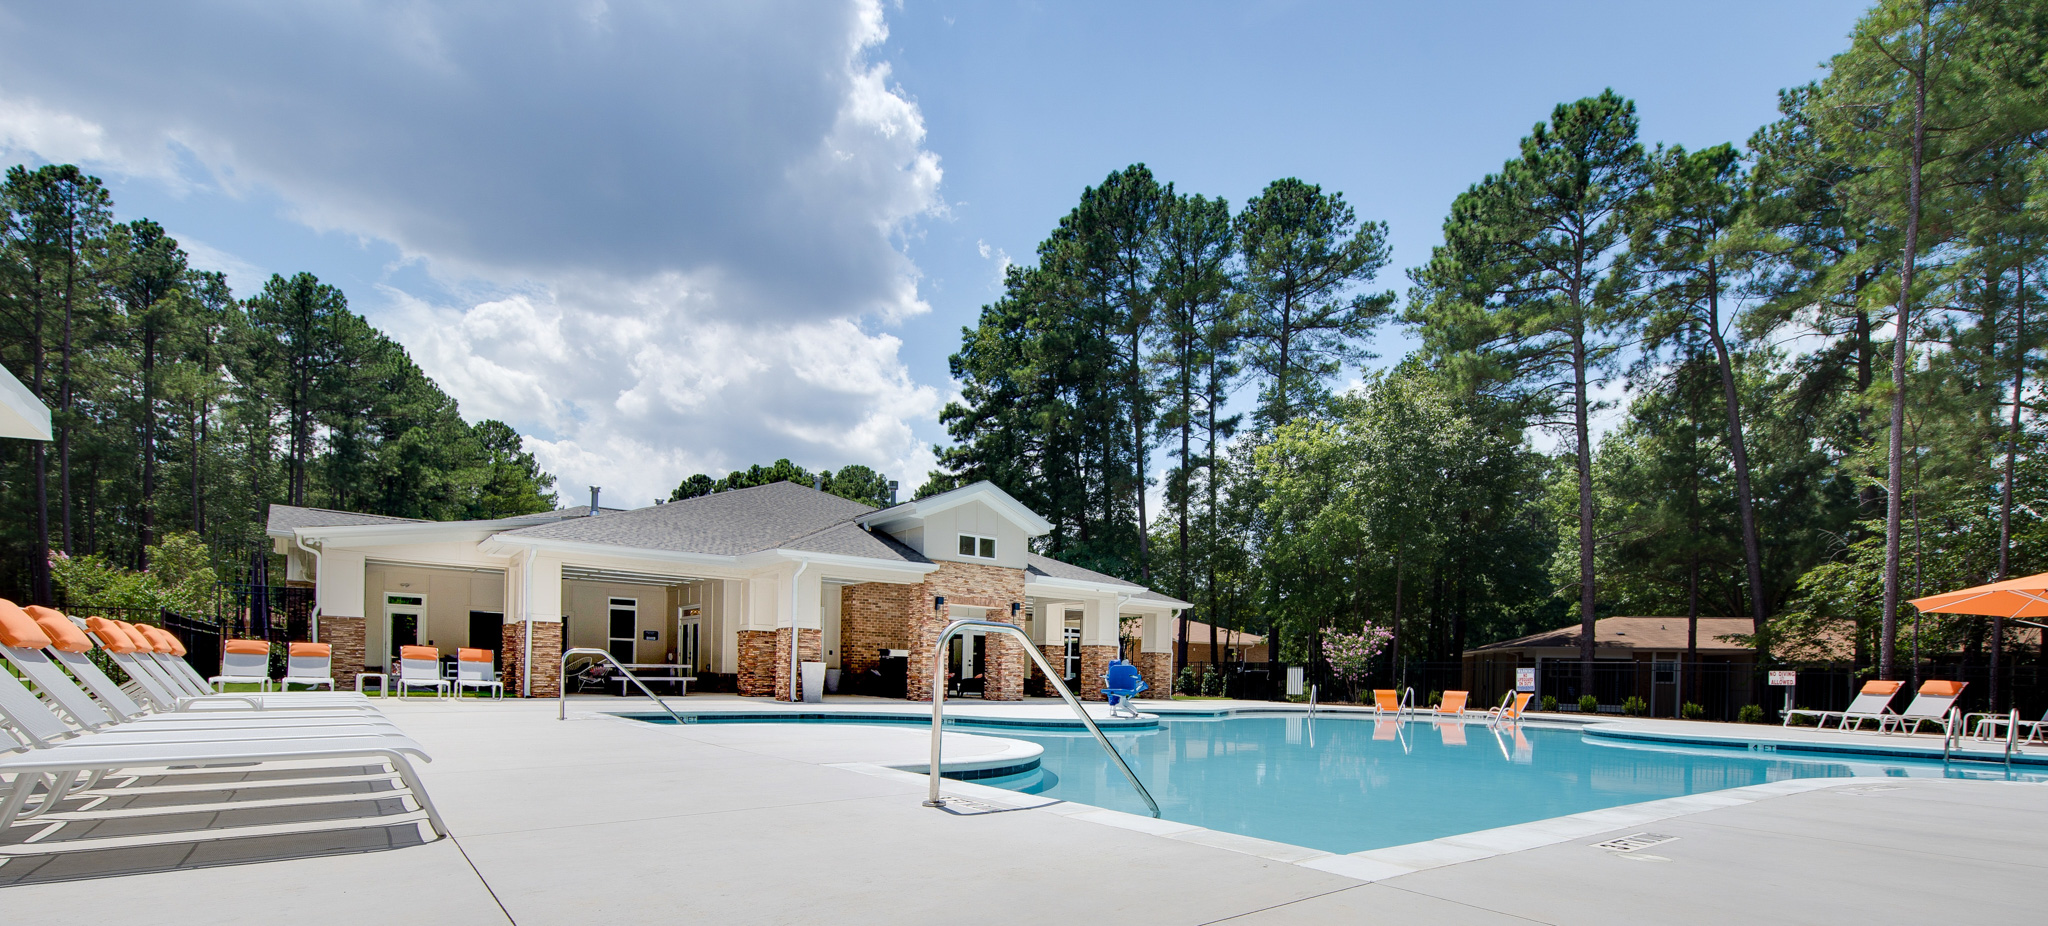 Pool 2 - Shellbrook Apartments | Apartments in Raleigh NC Commercial Photo shoot and Virtual Tour